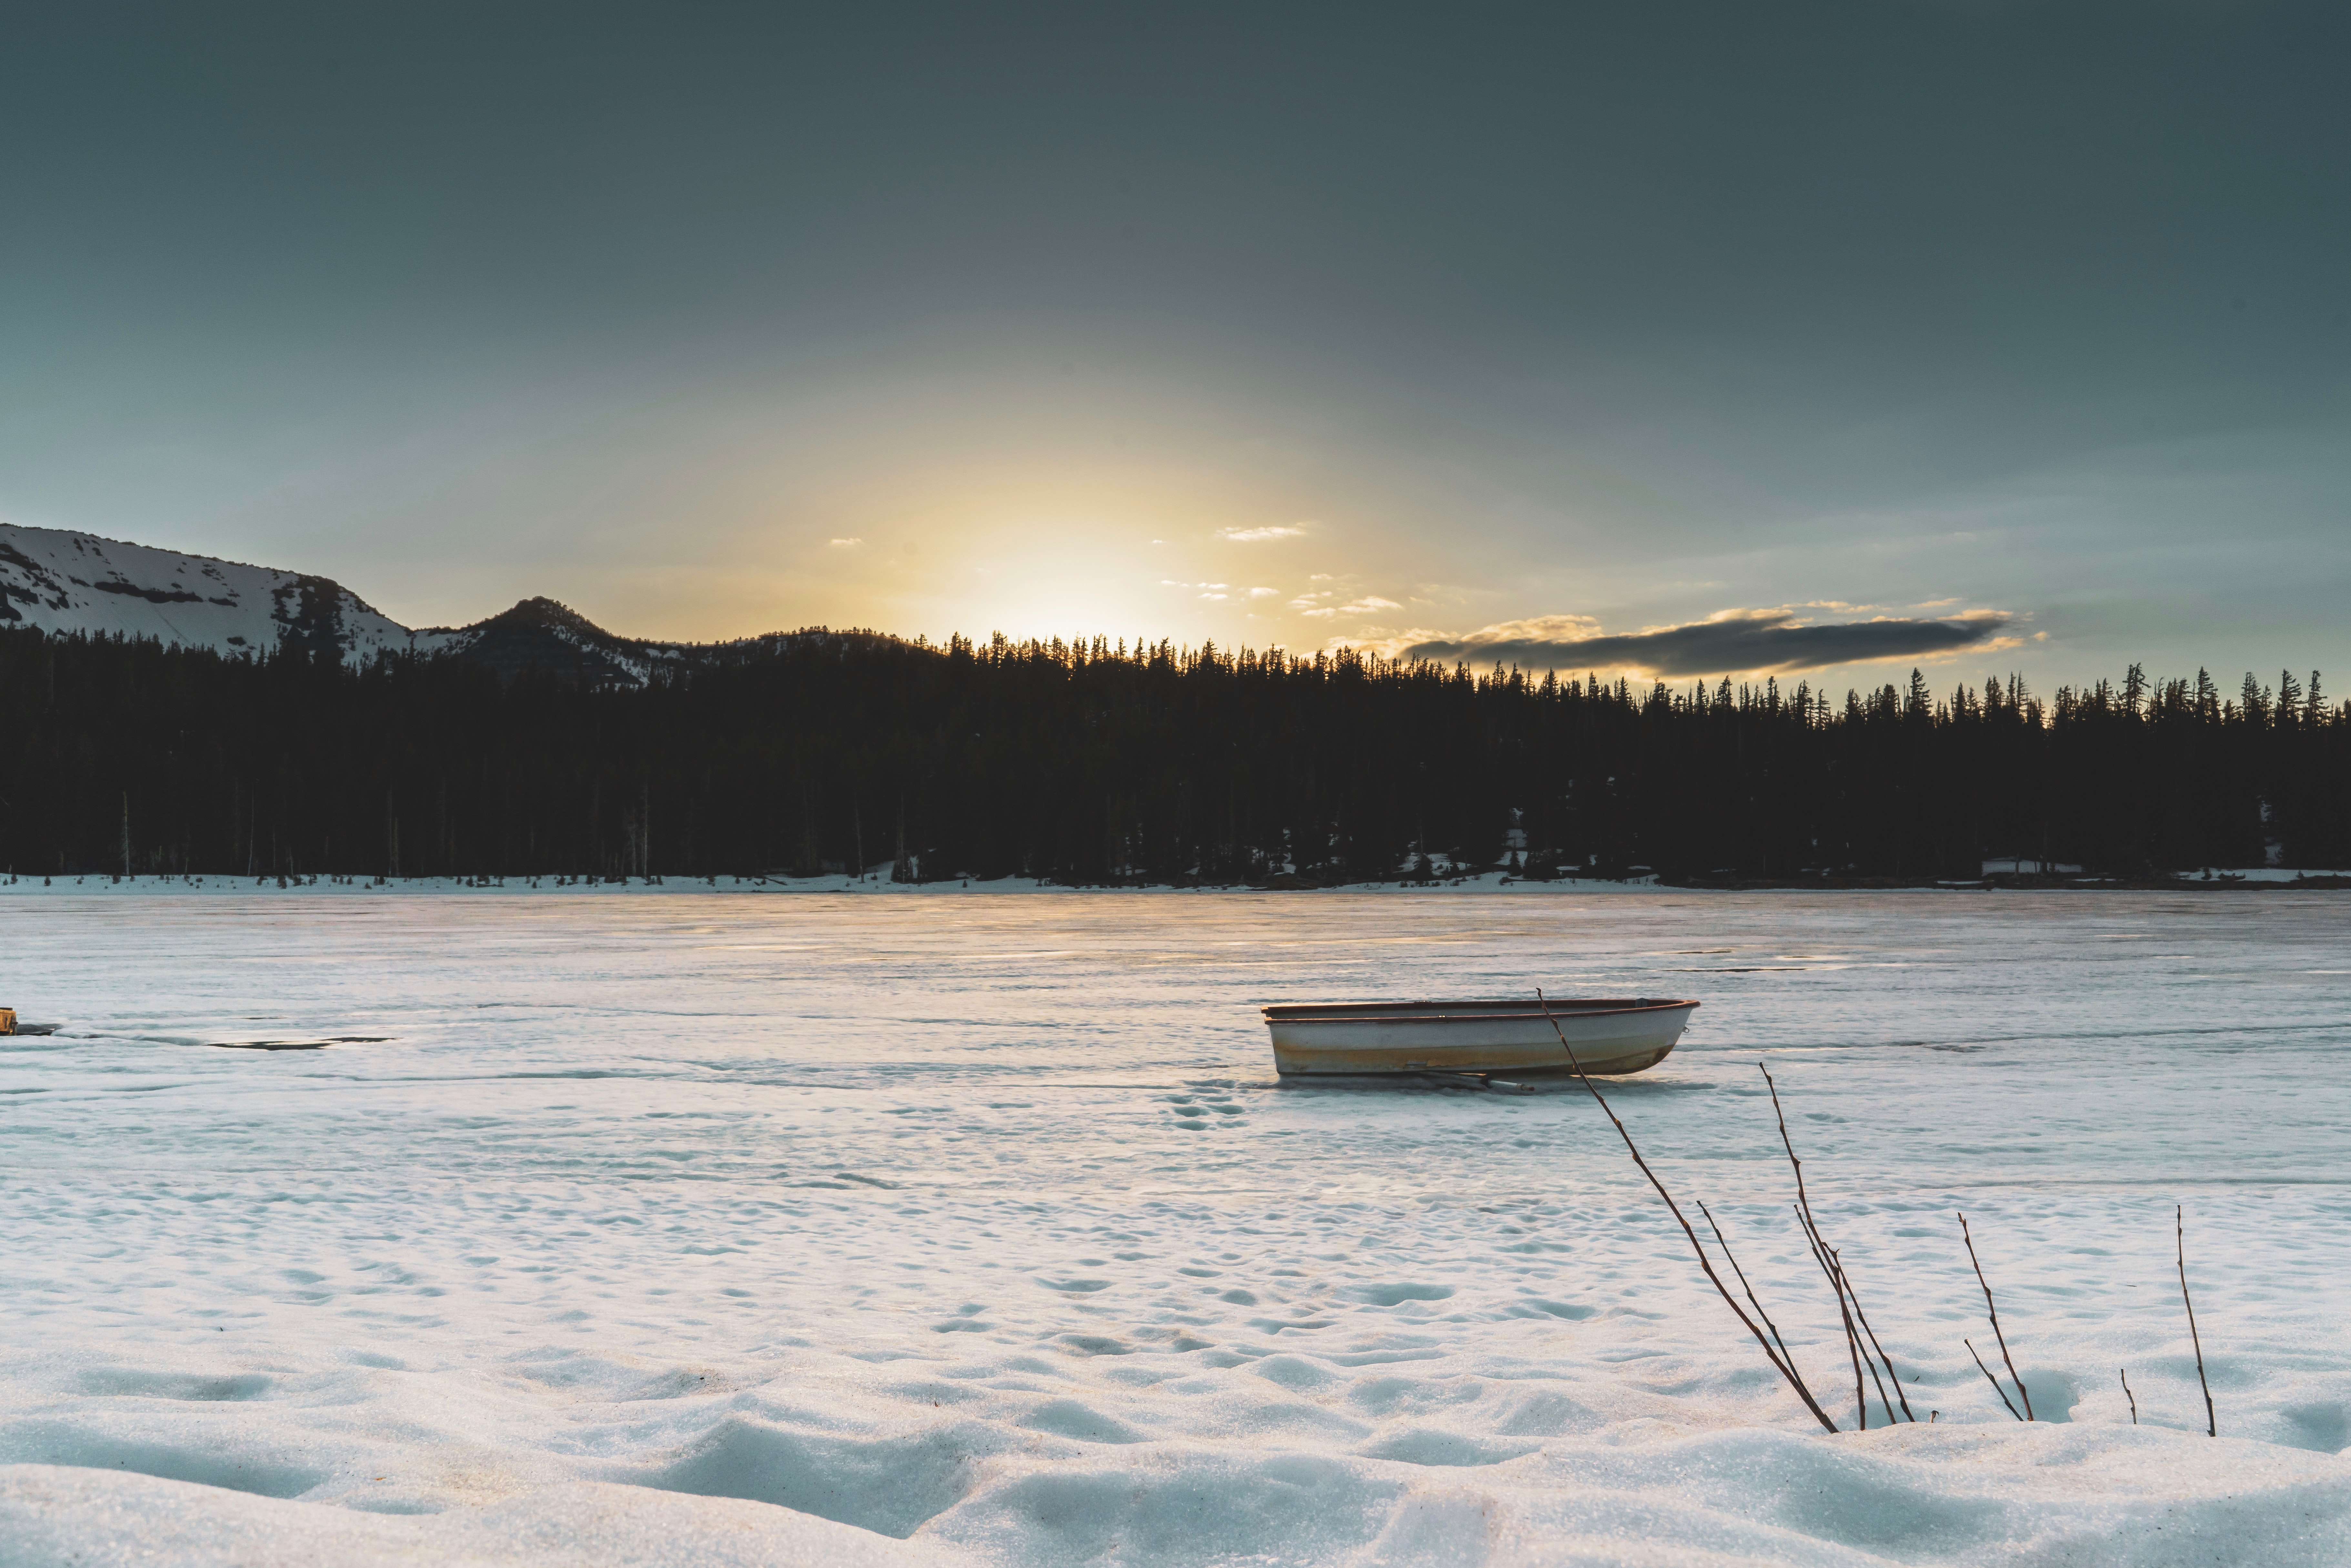 boat on frozen lake with silhouette of trees at distance